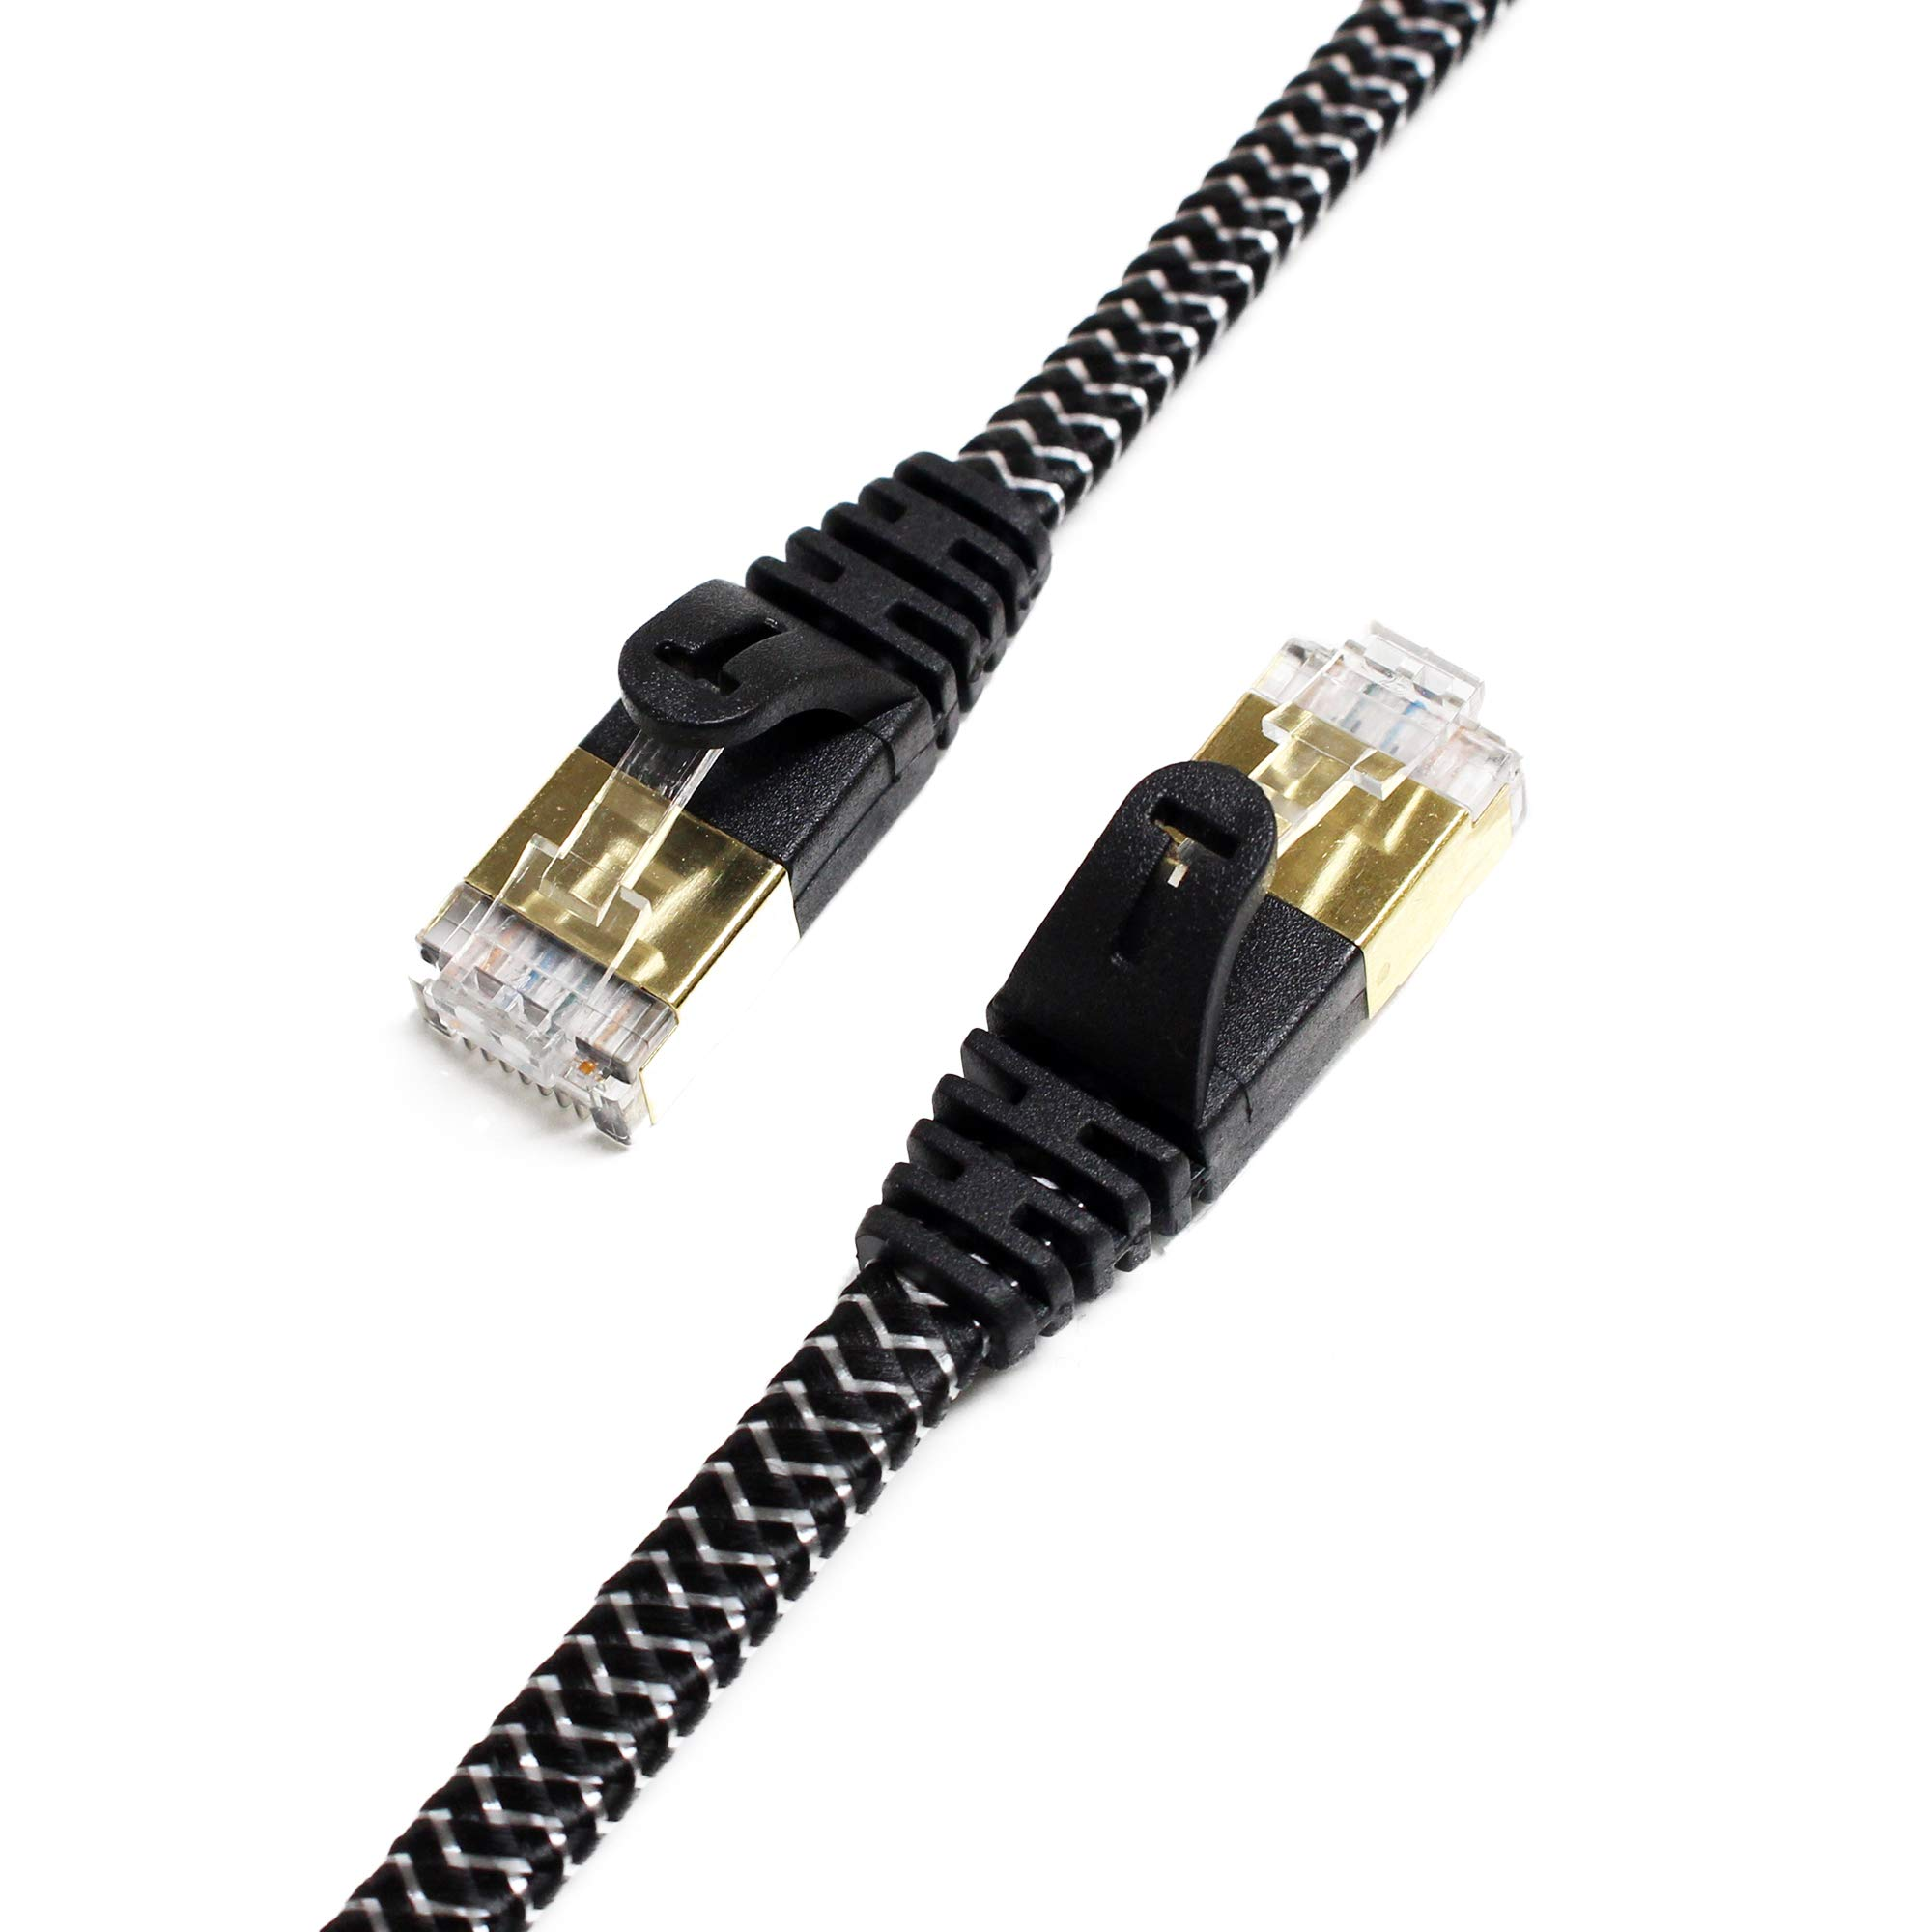 Tera Grand - 12FT - CAT7 10 Gigabit Ethernet Ultra Flat Patch Cable for Modem Router LAN Network - Braided Jacket, Gold Plated Shielded RJ45 Connectors, Faster Than CAT6a CAT6 CAT5e, Black & White by Tera Grand